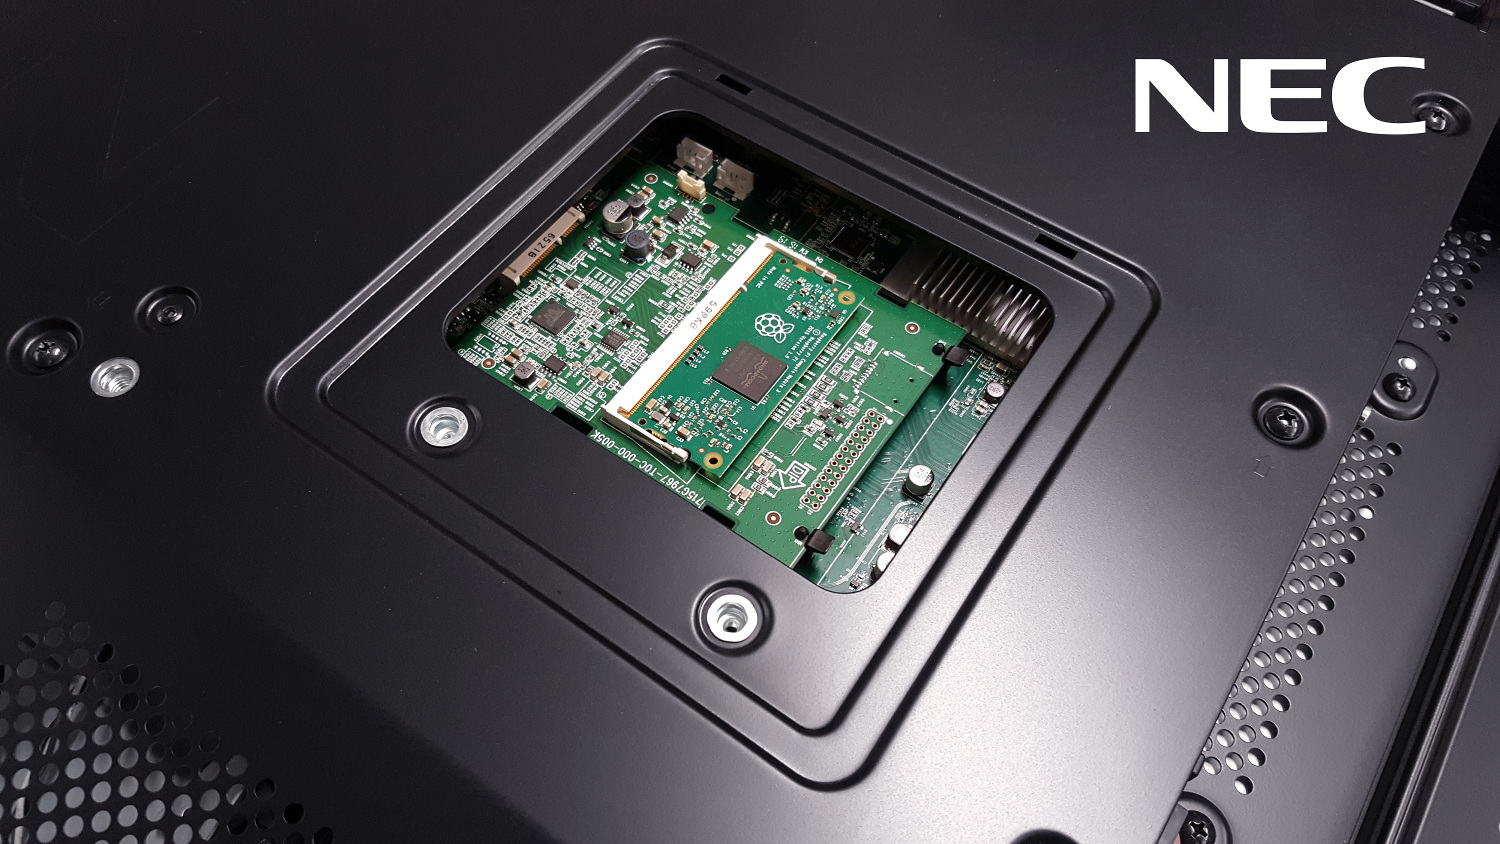 The Compute Module 3 will be used in NEC's new range of smart, large-format displays